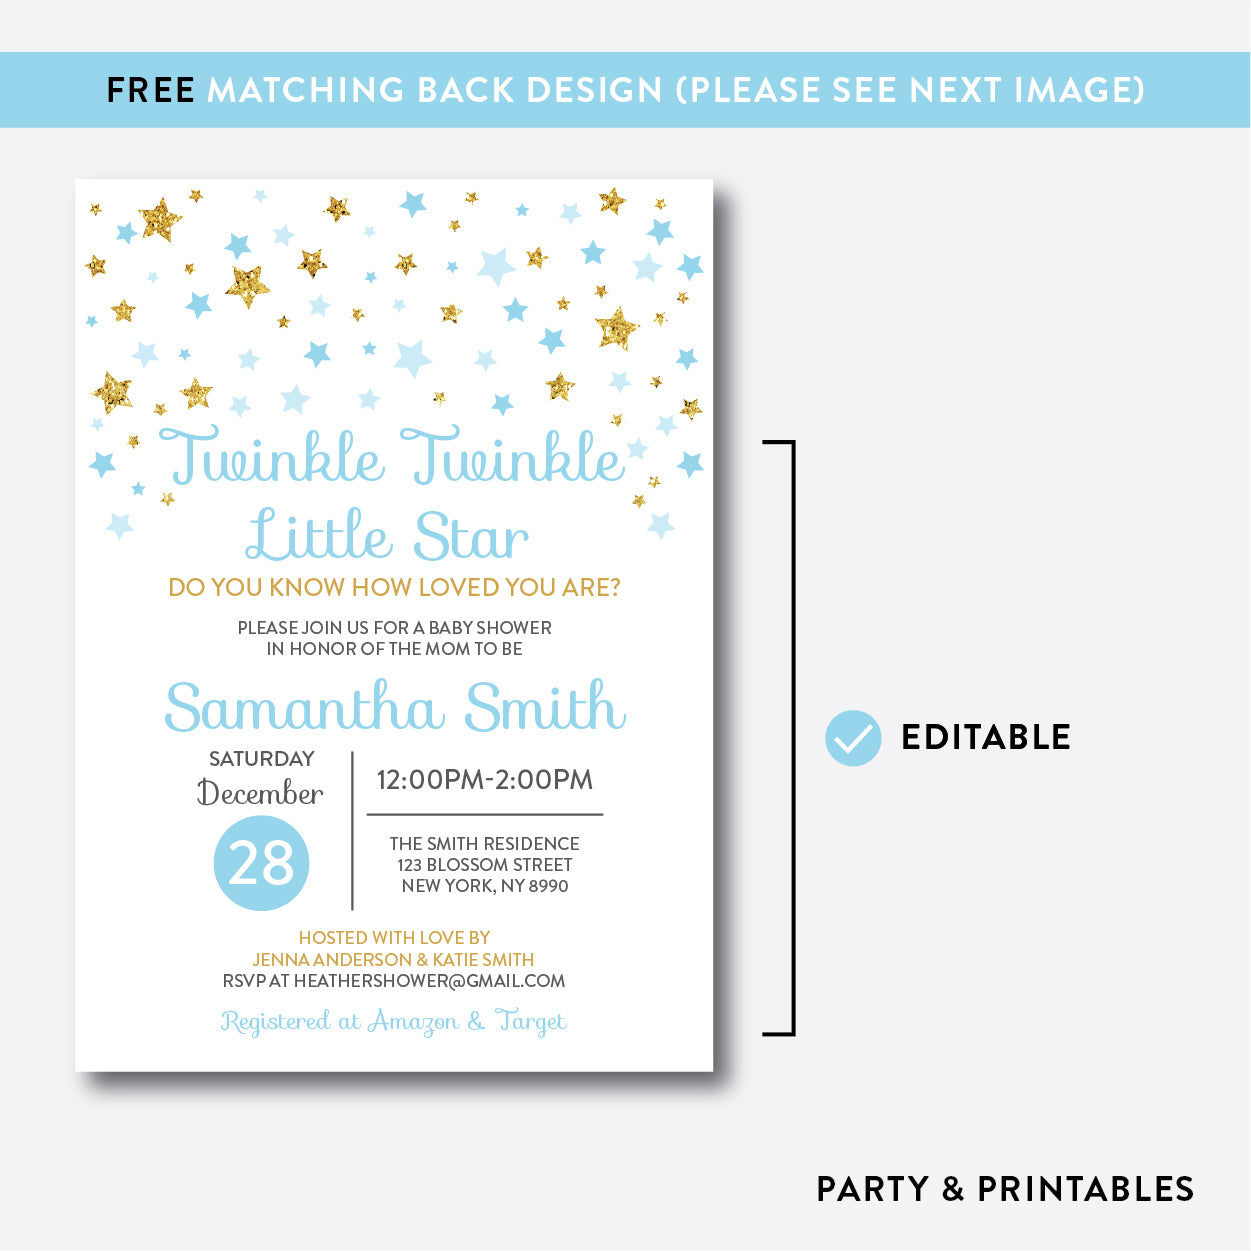 Twinkle Twinkle Little Star Baby Shower Invitation / Editable / Instant Download (GBS.06), invitation - Party and Printables